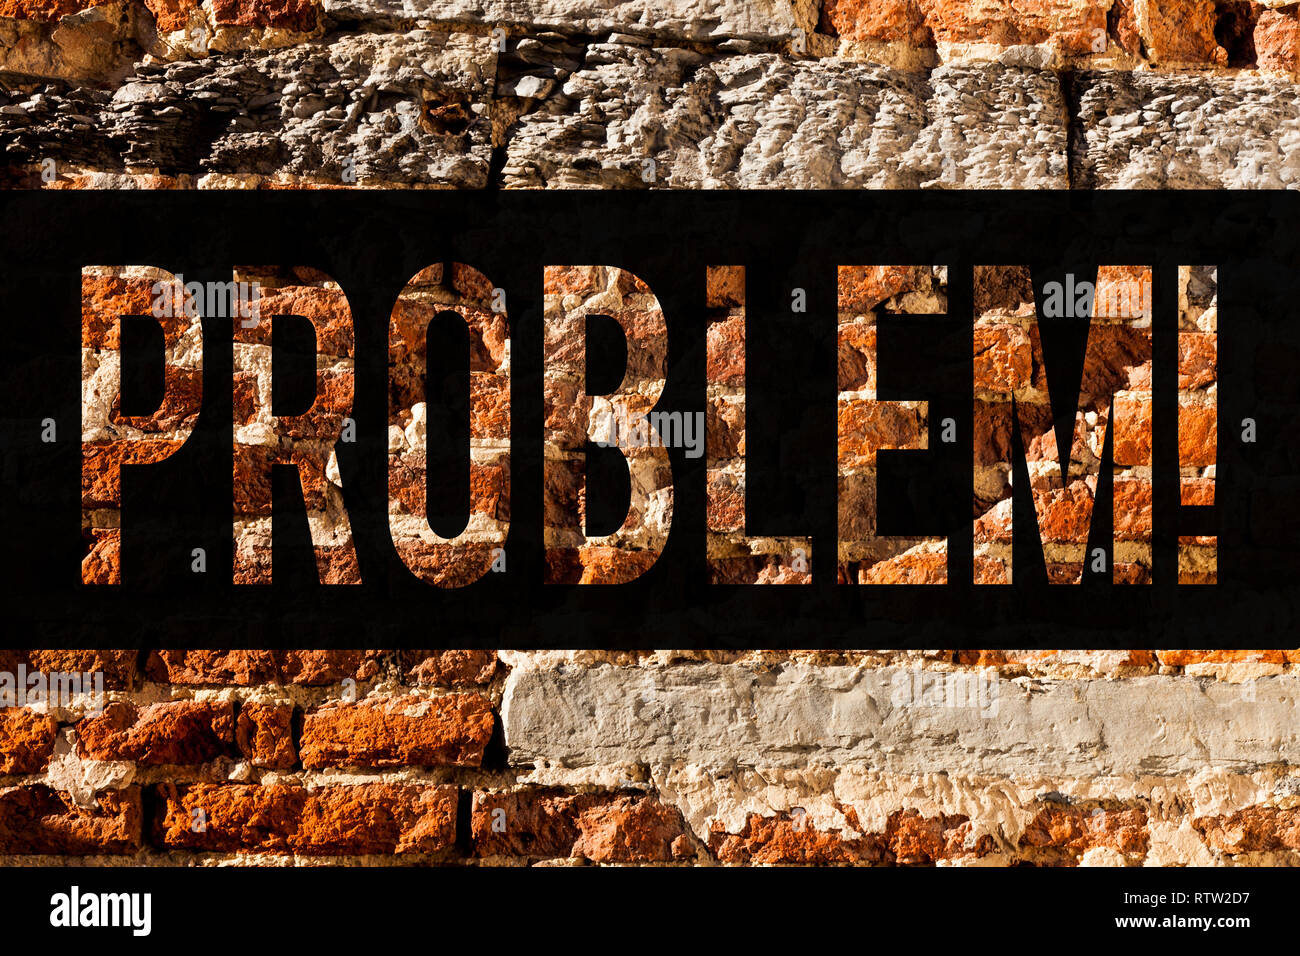 Word writing text Problem. Business concept for Trouble that need to be solved Difficult Situation Complication Brick Wall art like Graffiti motivatio - Stock Image